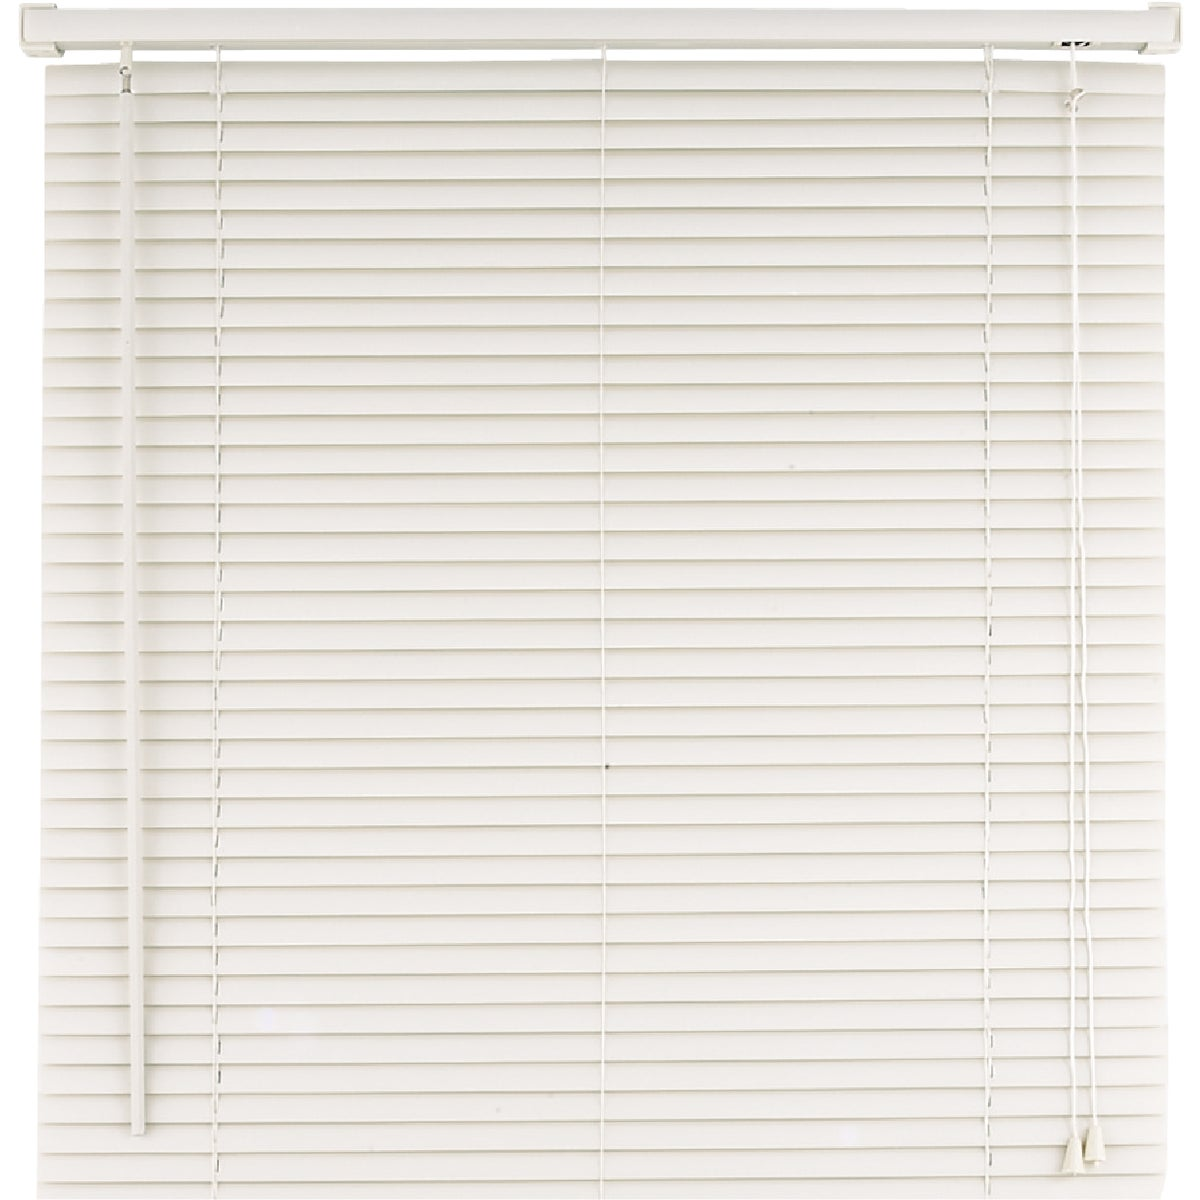 48X72 WHITE MINI BLIND - 4872W by Lotus Wind Incom